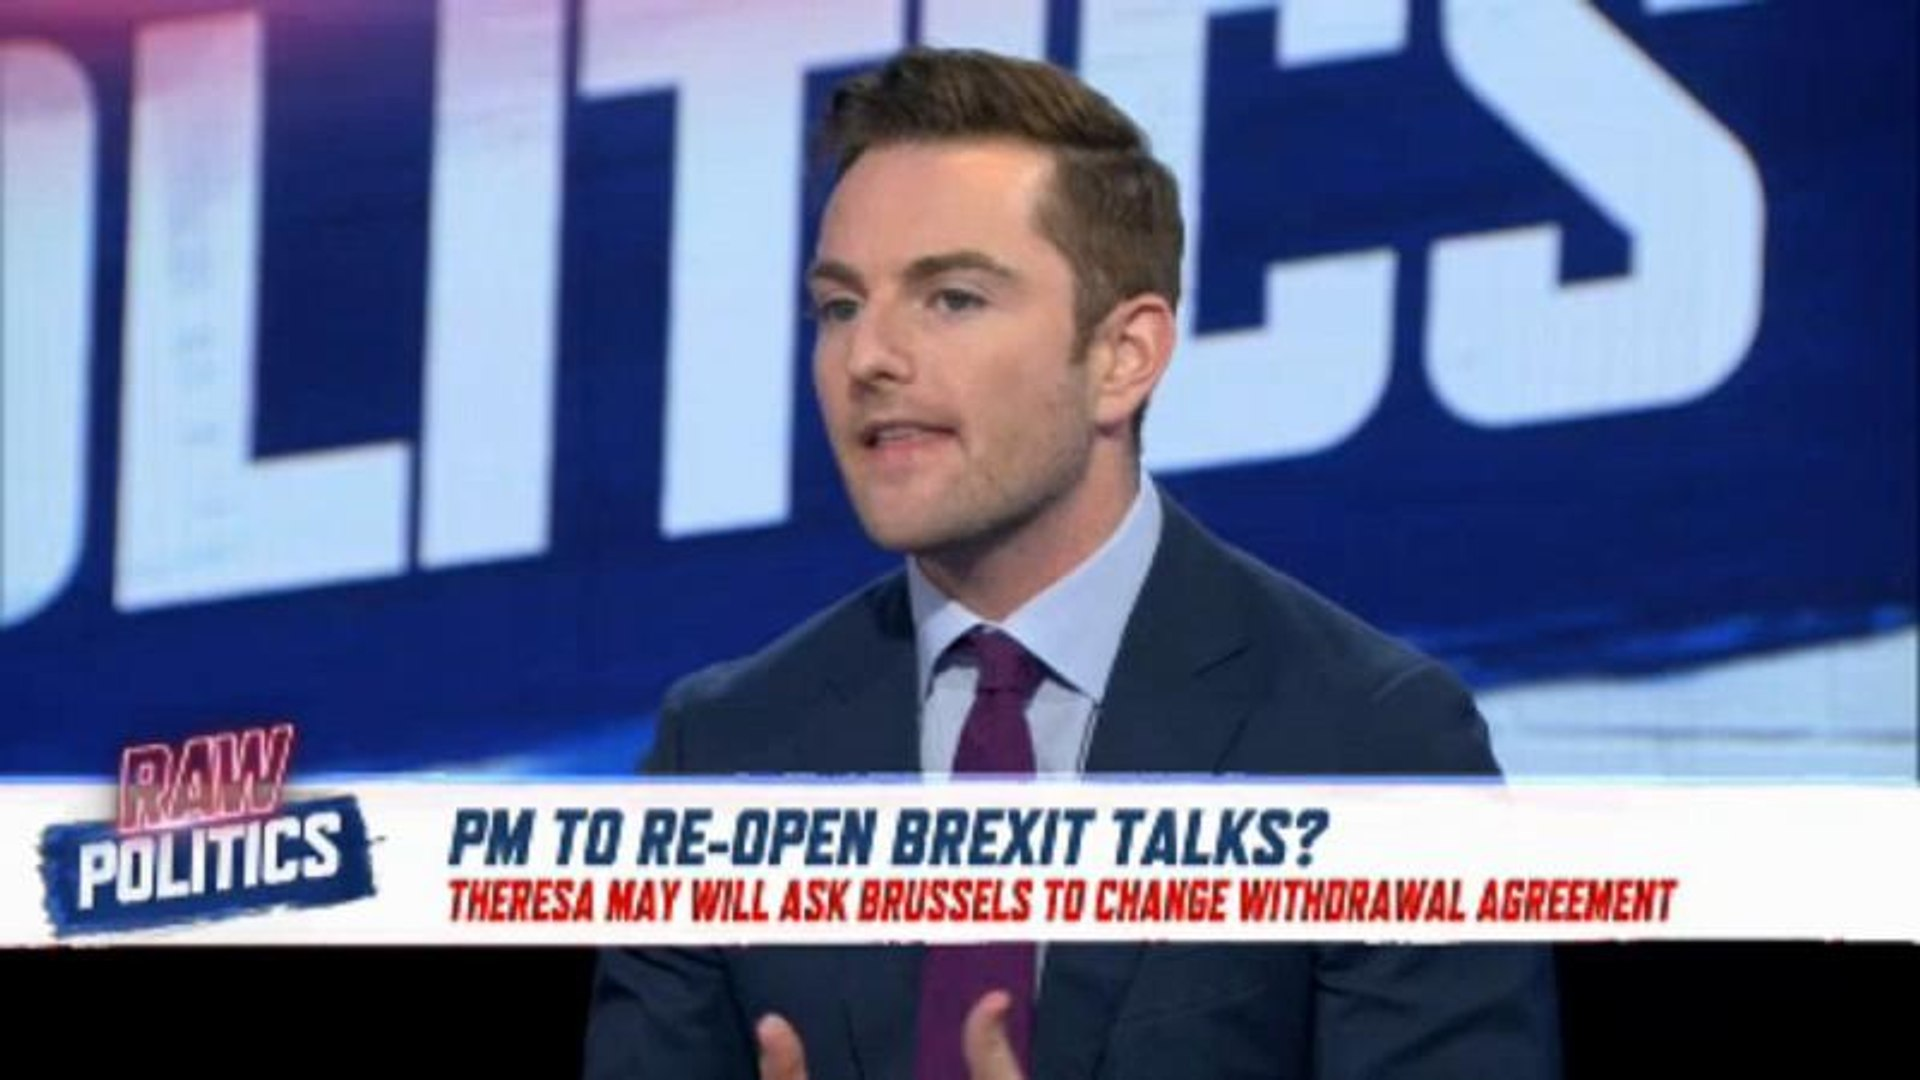 Raw Politics in full: Brexit, fake news and the Green Party